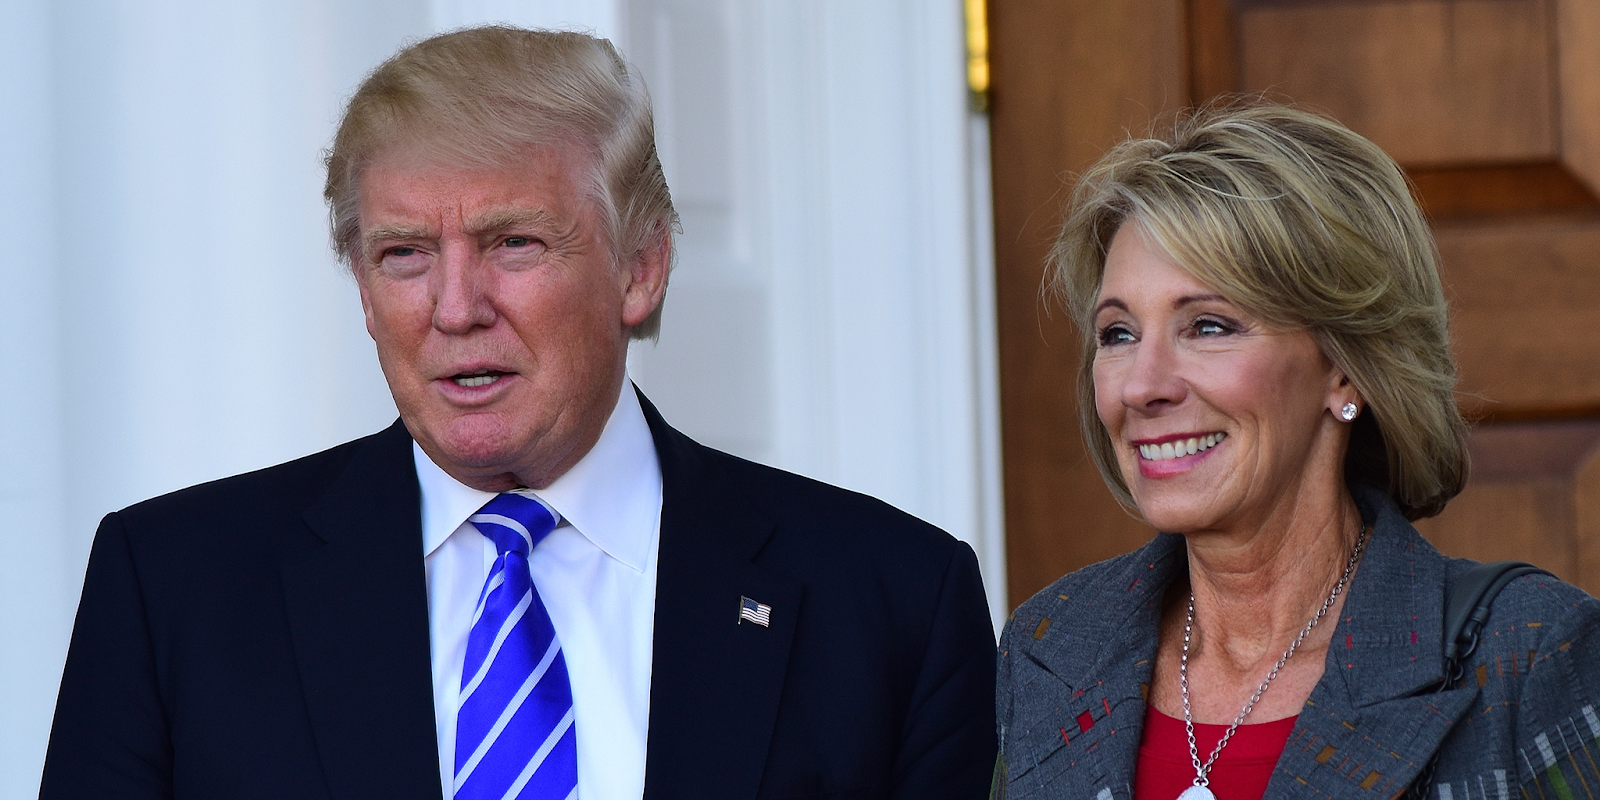 Secretary DeVos Thinks 2020 Might Be the Perfect Time to Step Down